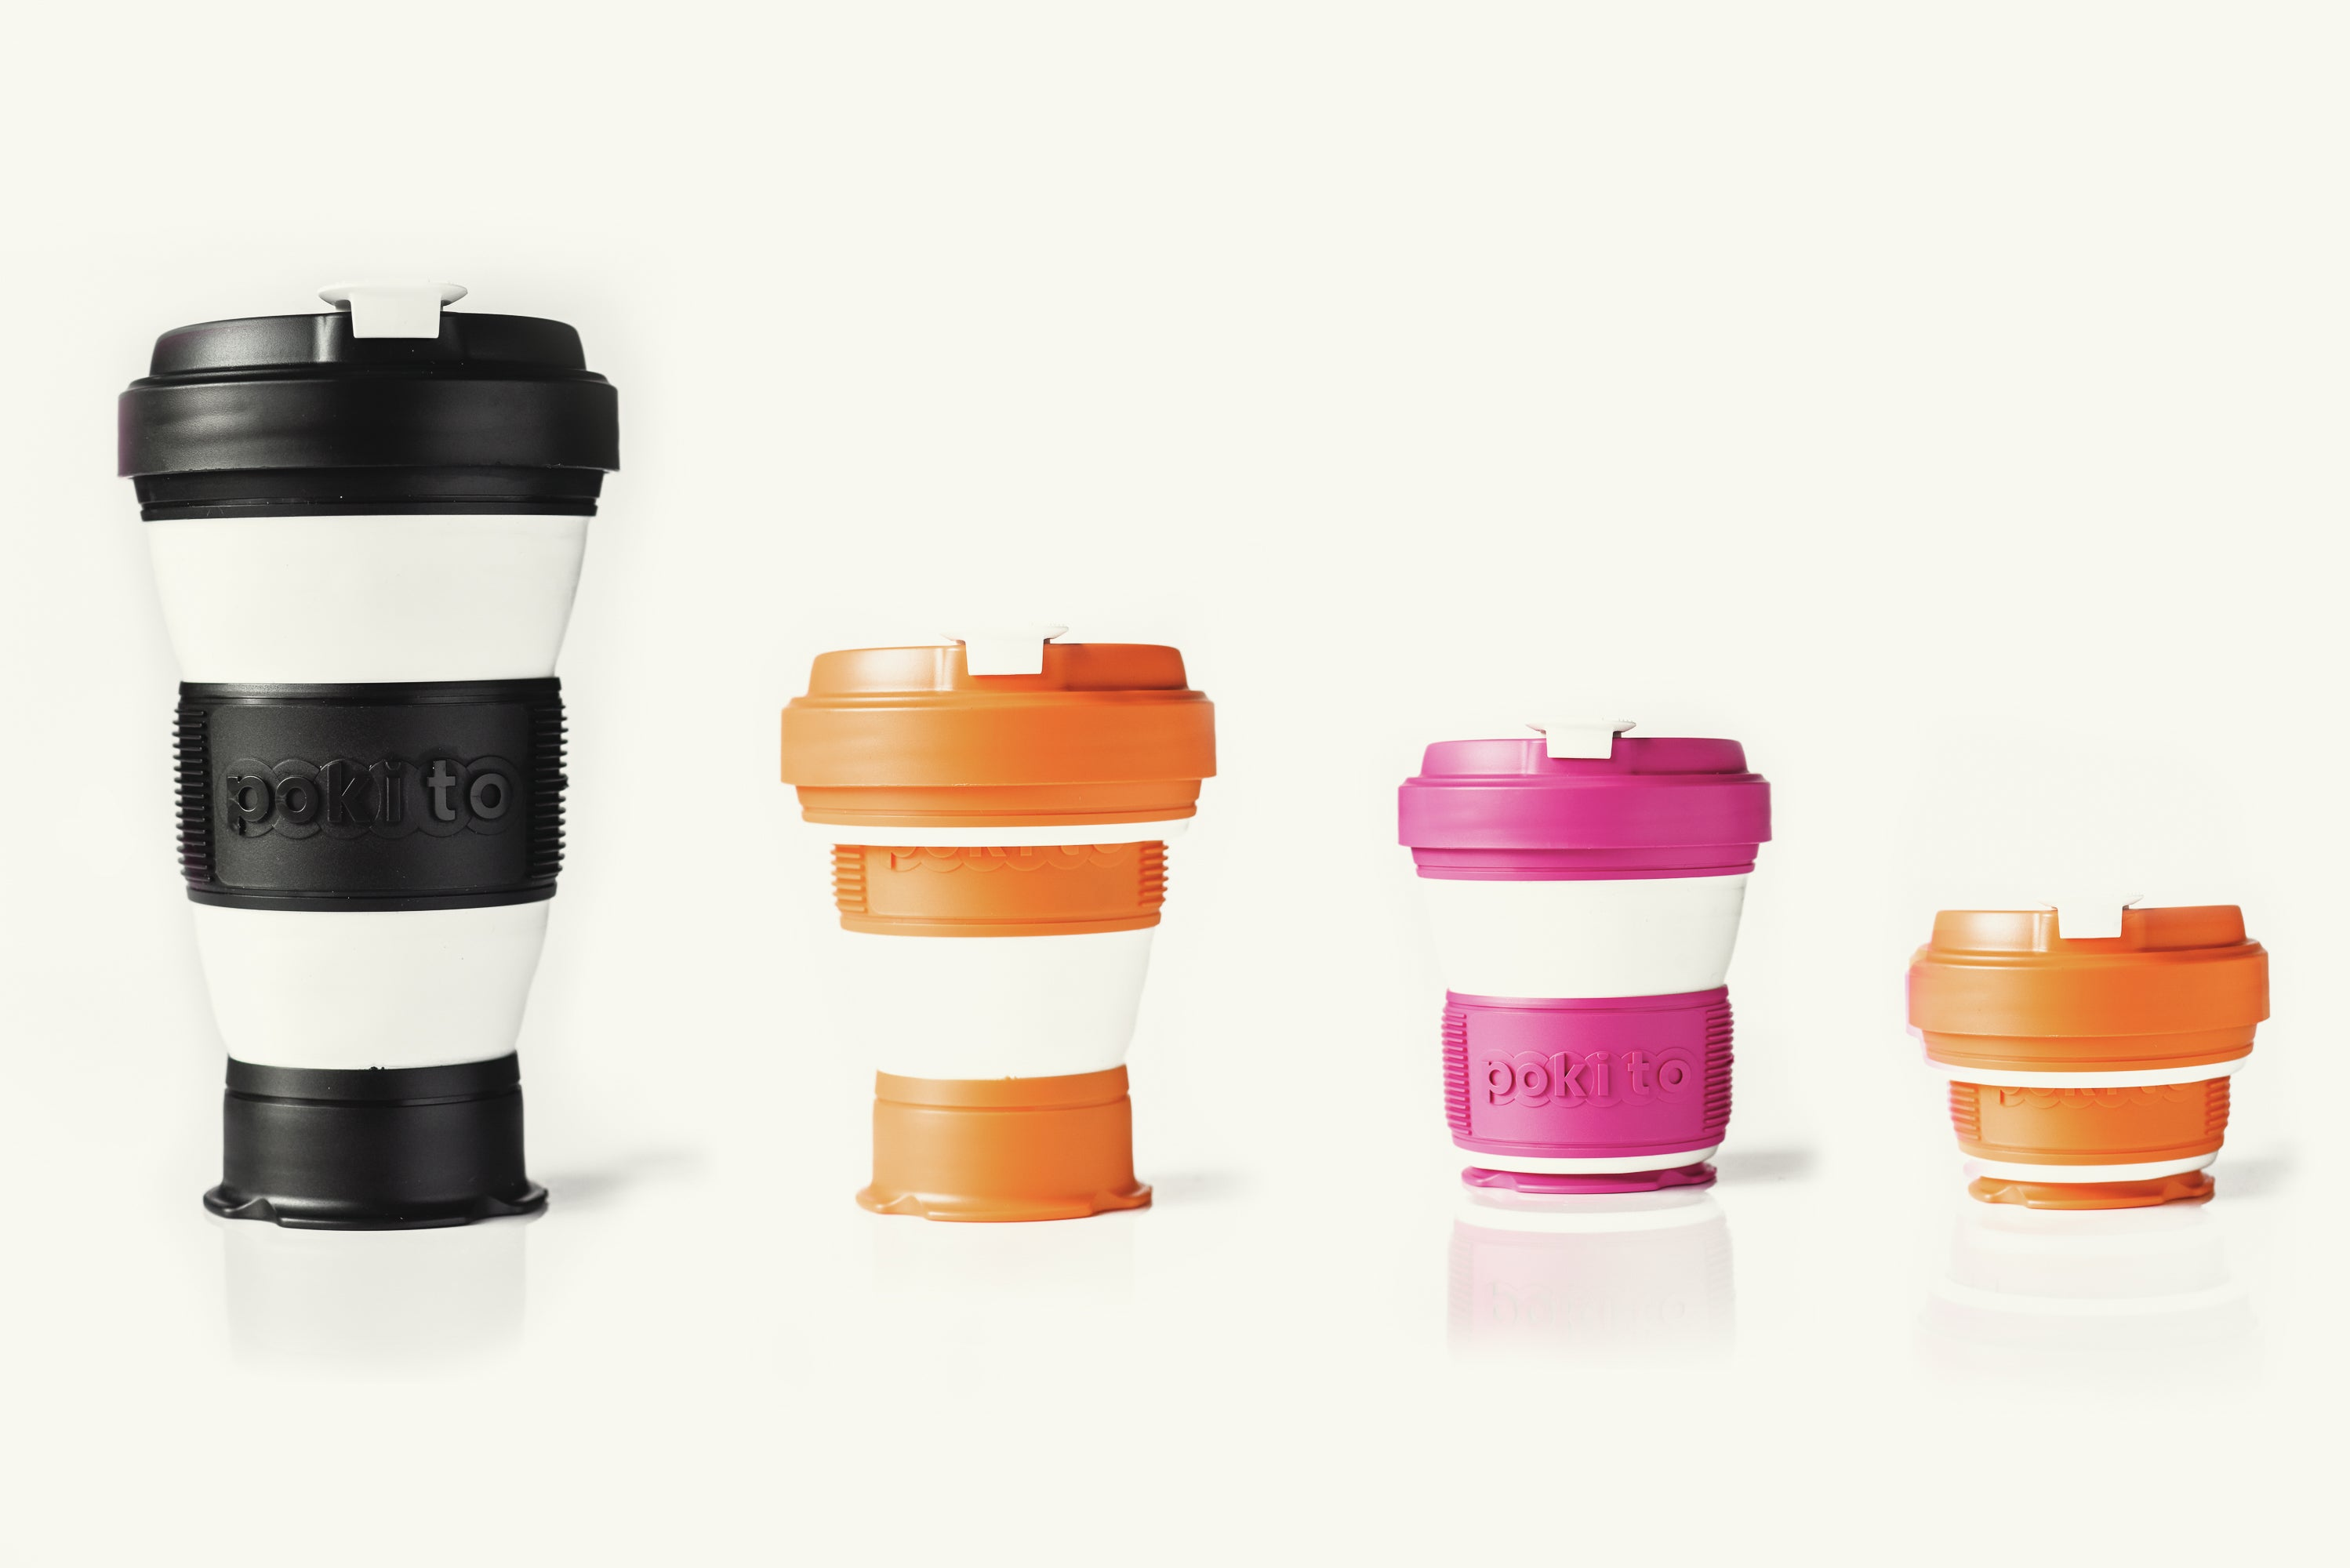 Pokito collapsible cup